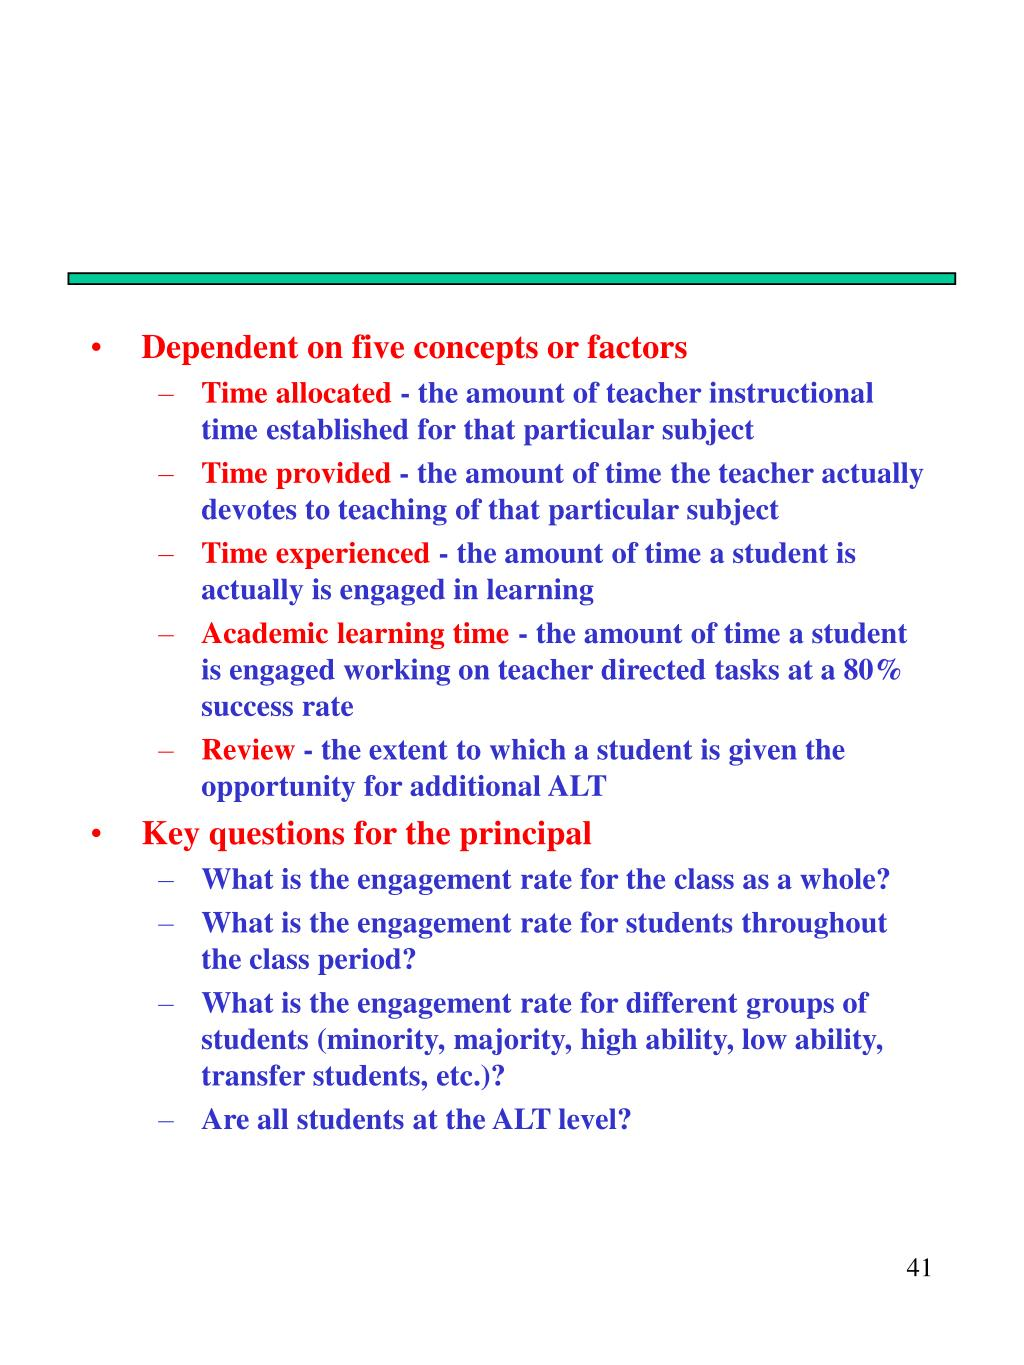 Dependent on five concepts or factors